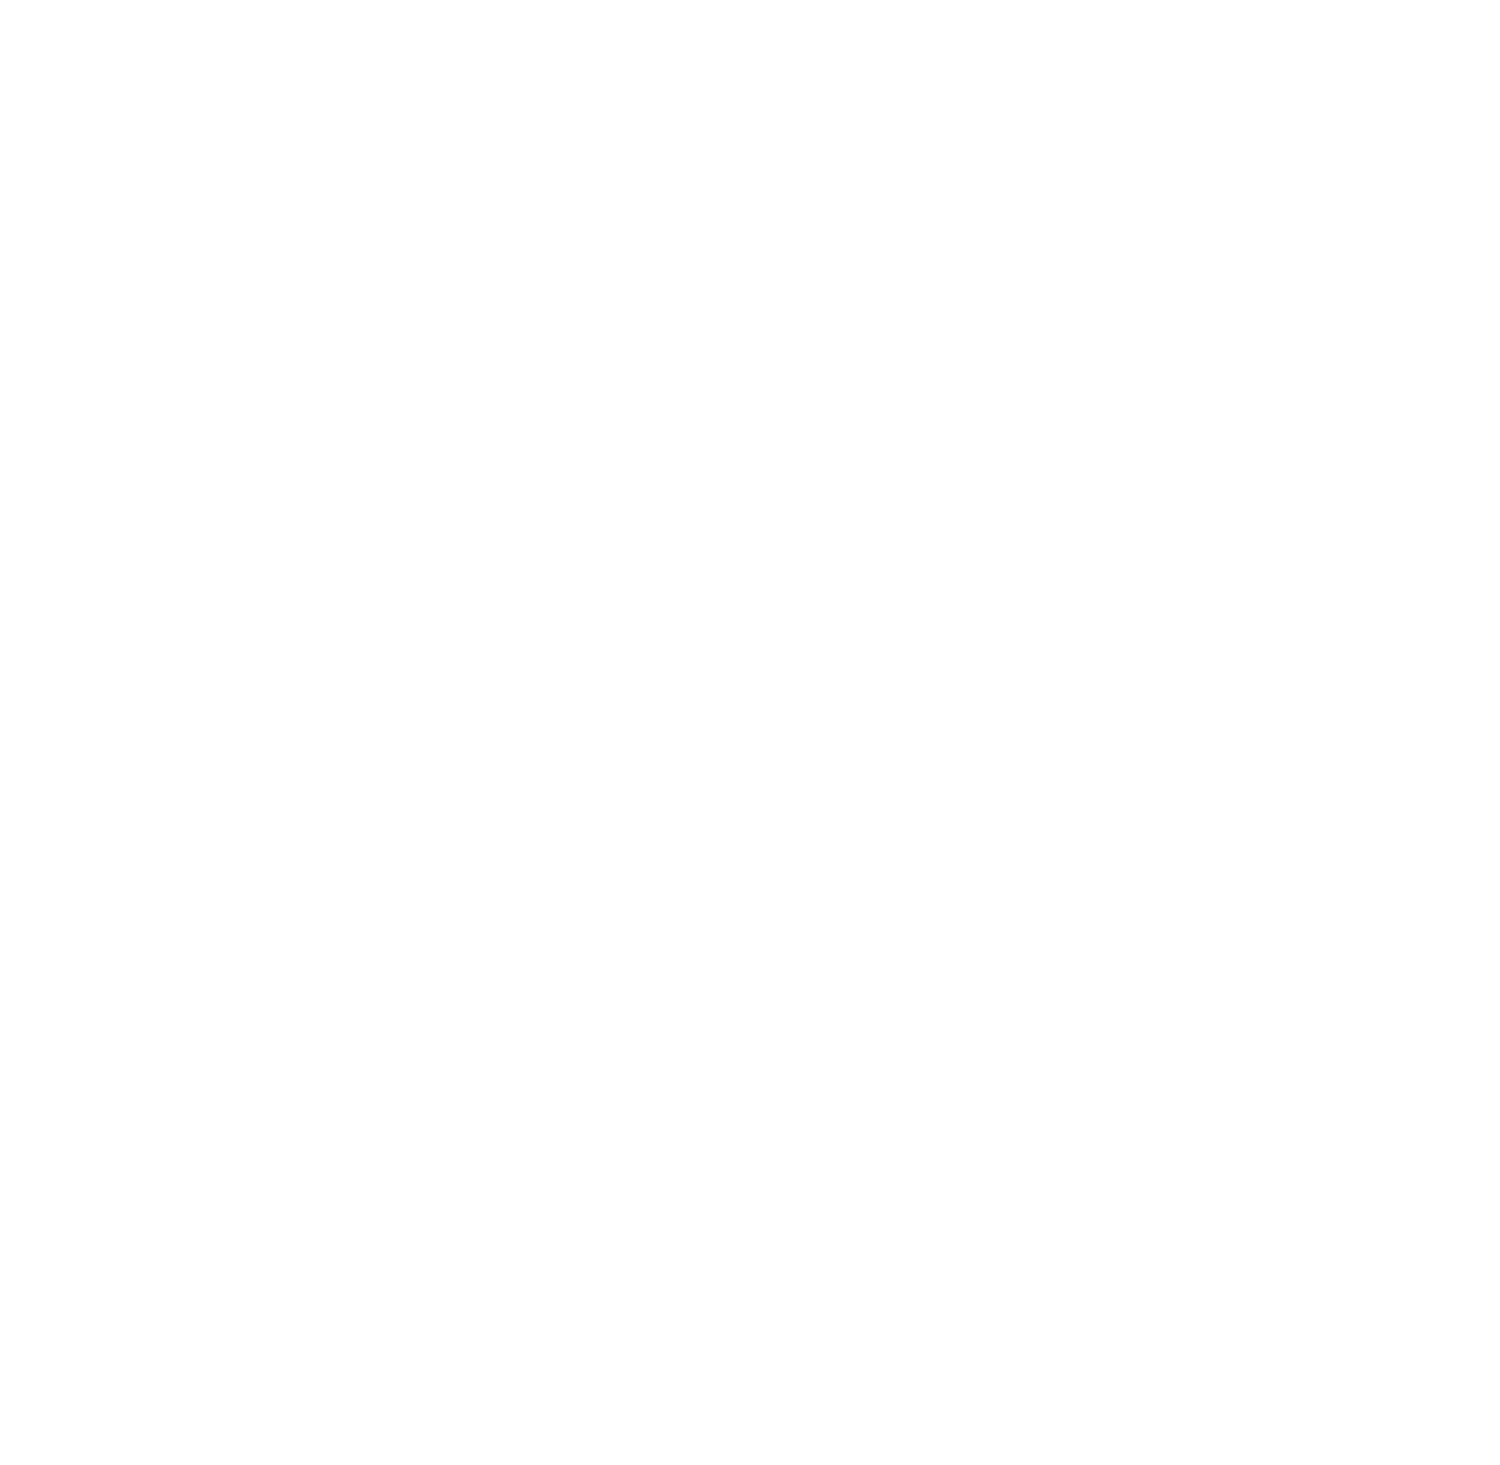 Graham Alexander: Official Website - Victor Talking Machine Co.